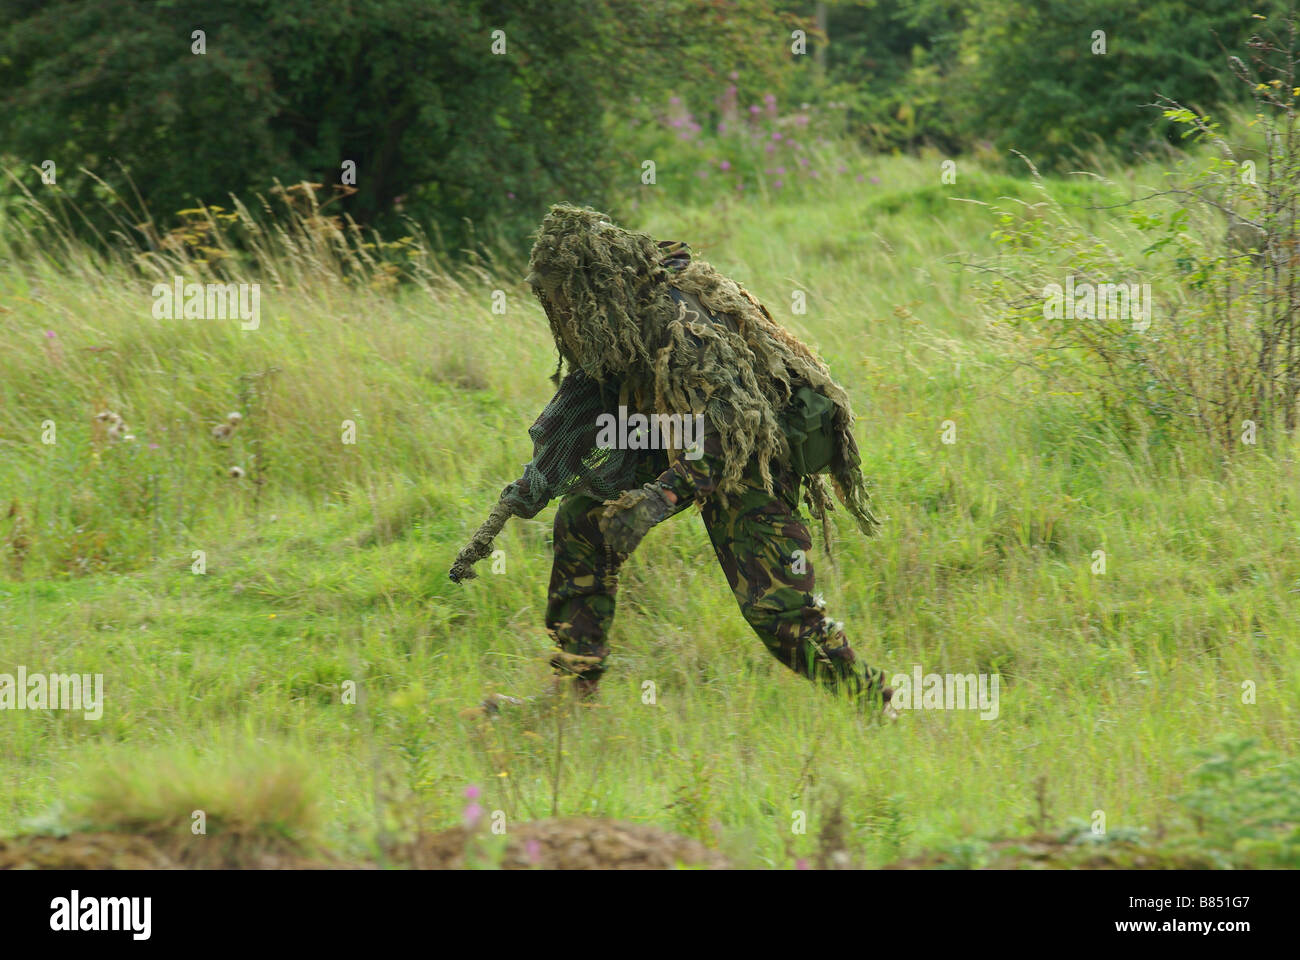 Sniper in Ghillie suit - Stock Image